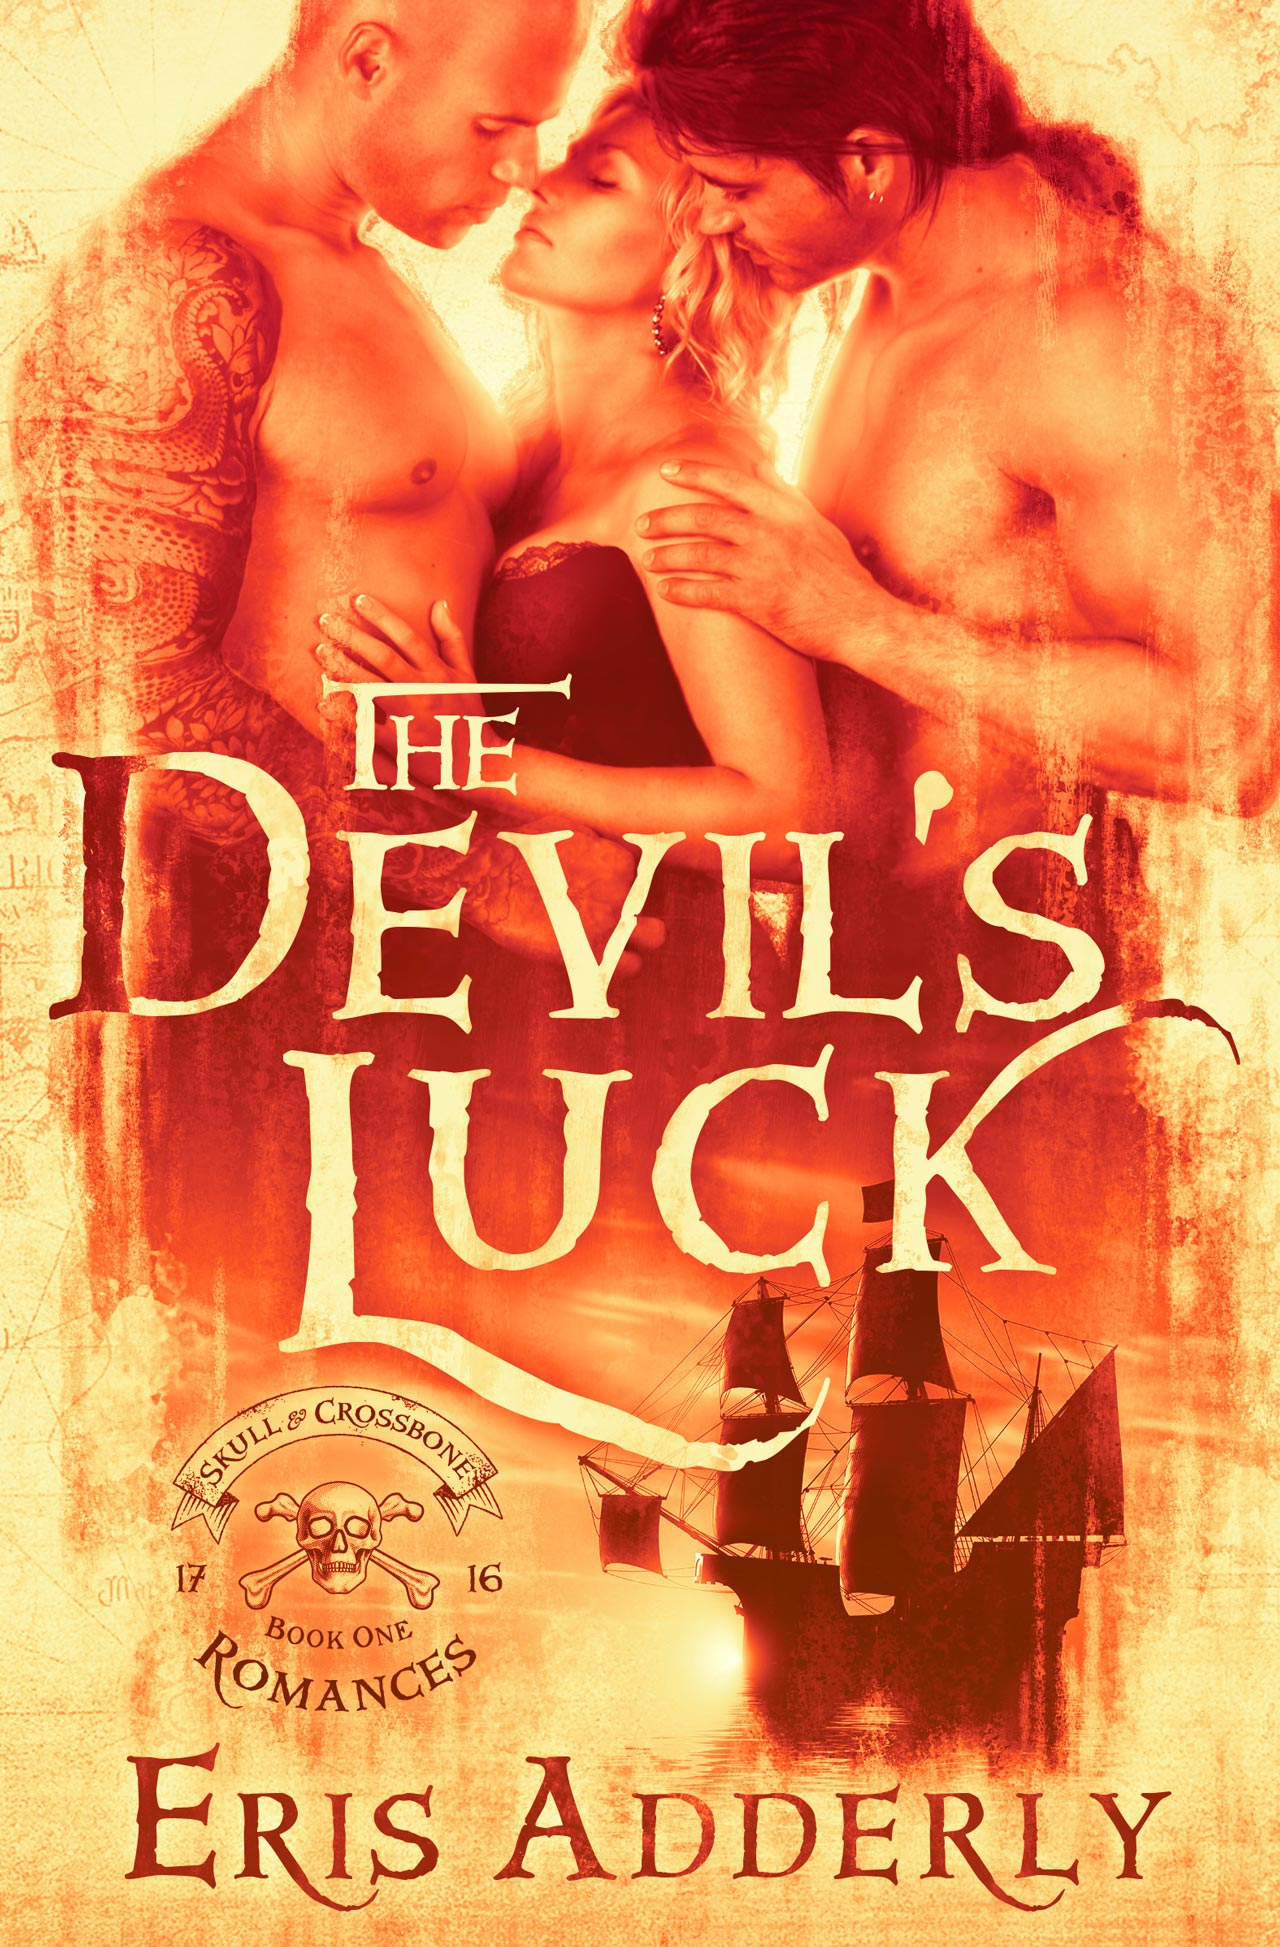 The Devil's Luck Comes to Amazon!